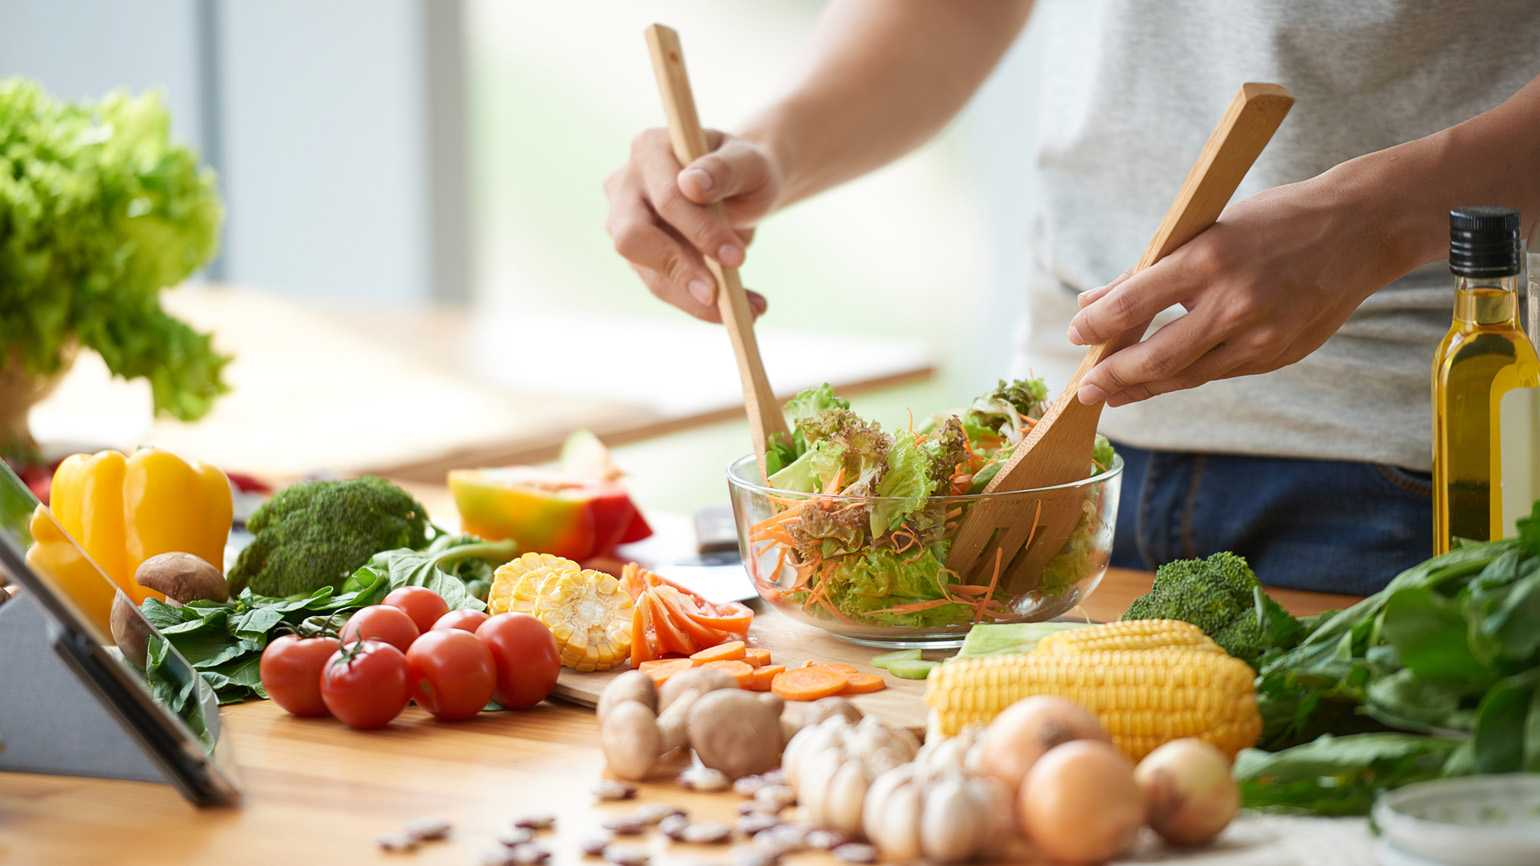 A caregiver tossing a healthy, nutritious salad in the kitchen.